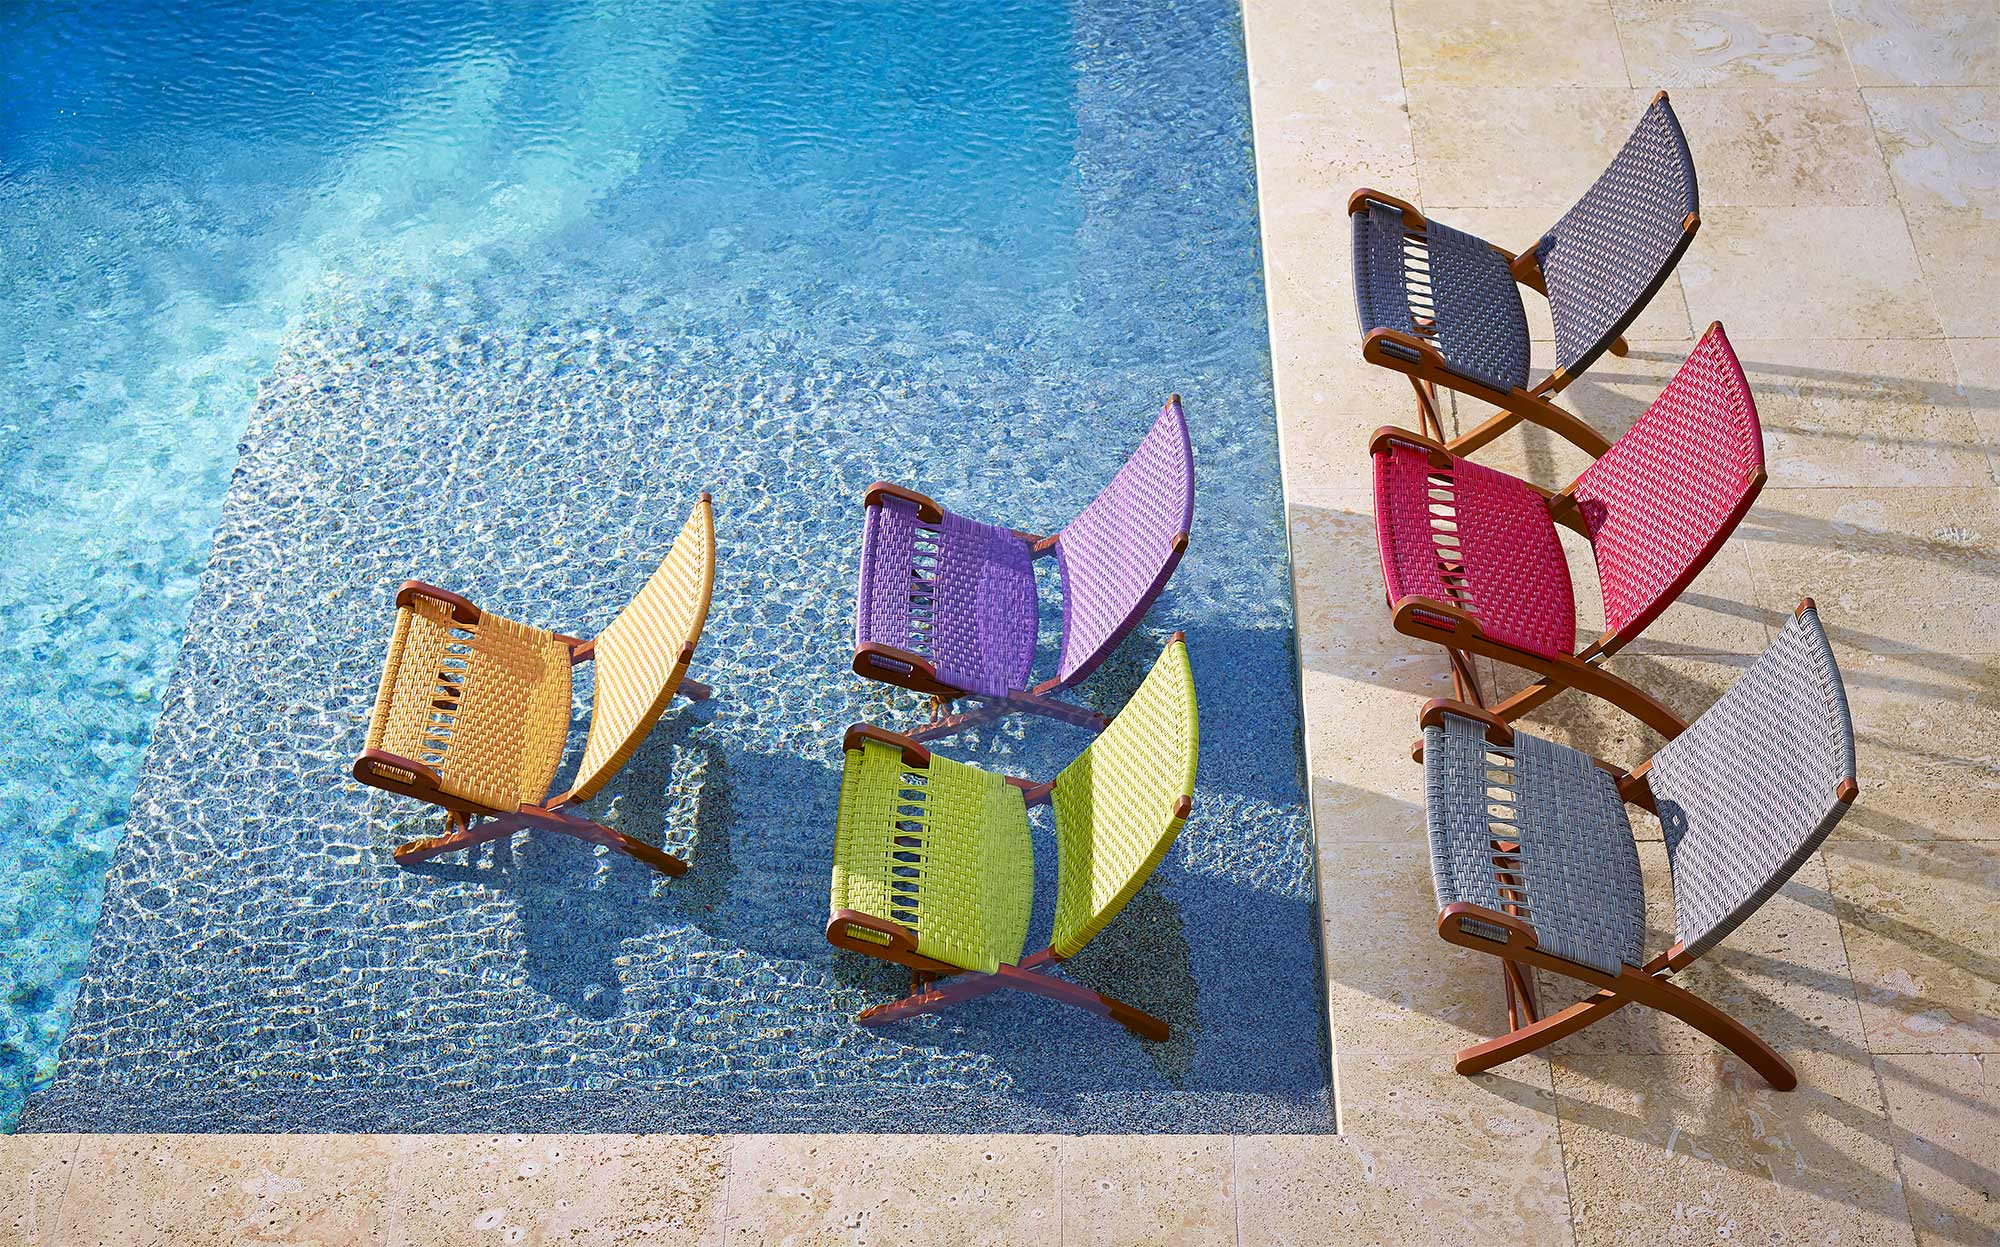 Saccaro-Color-Pool-Chairs-Miami-Design-Photographer